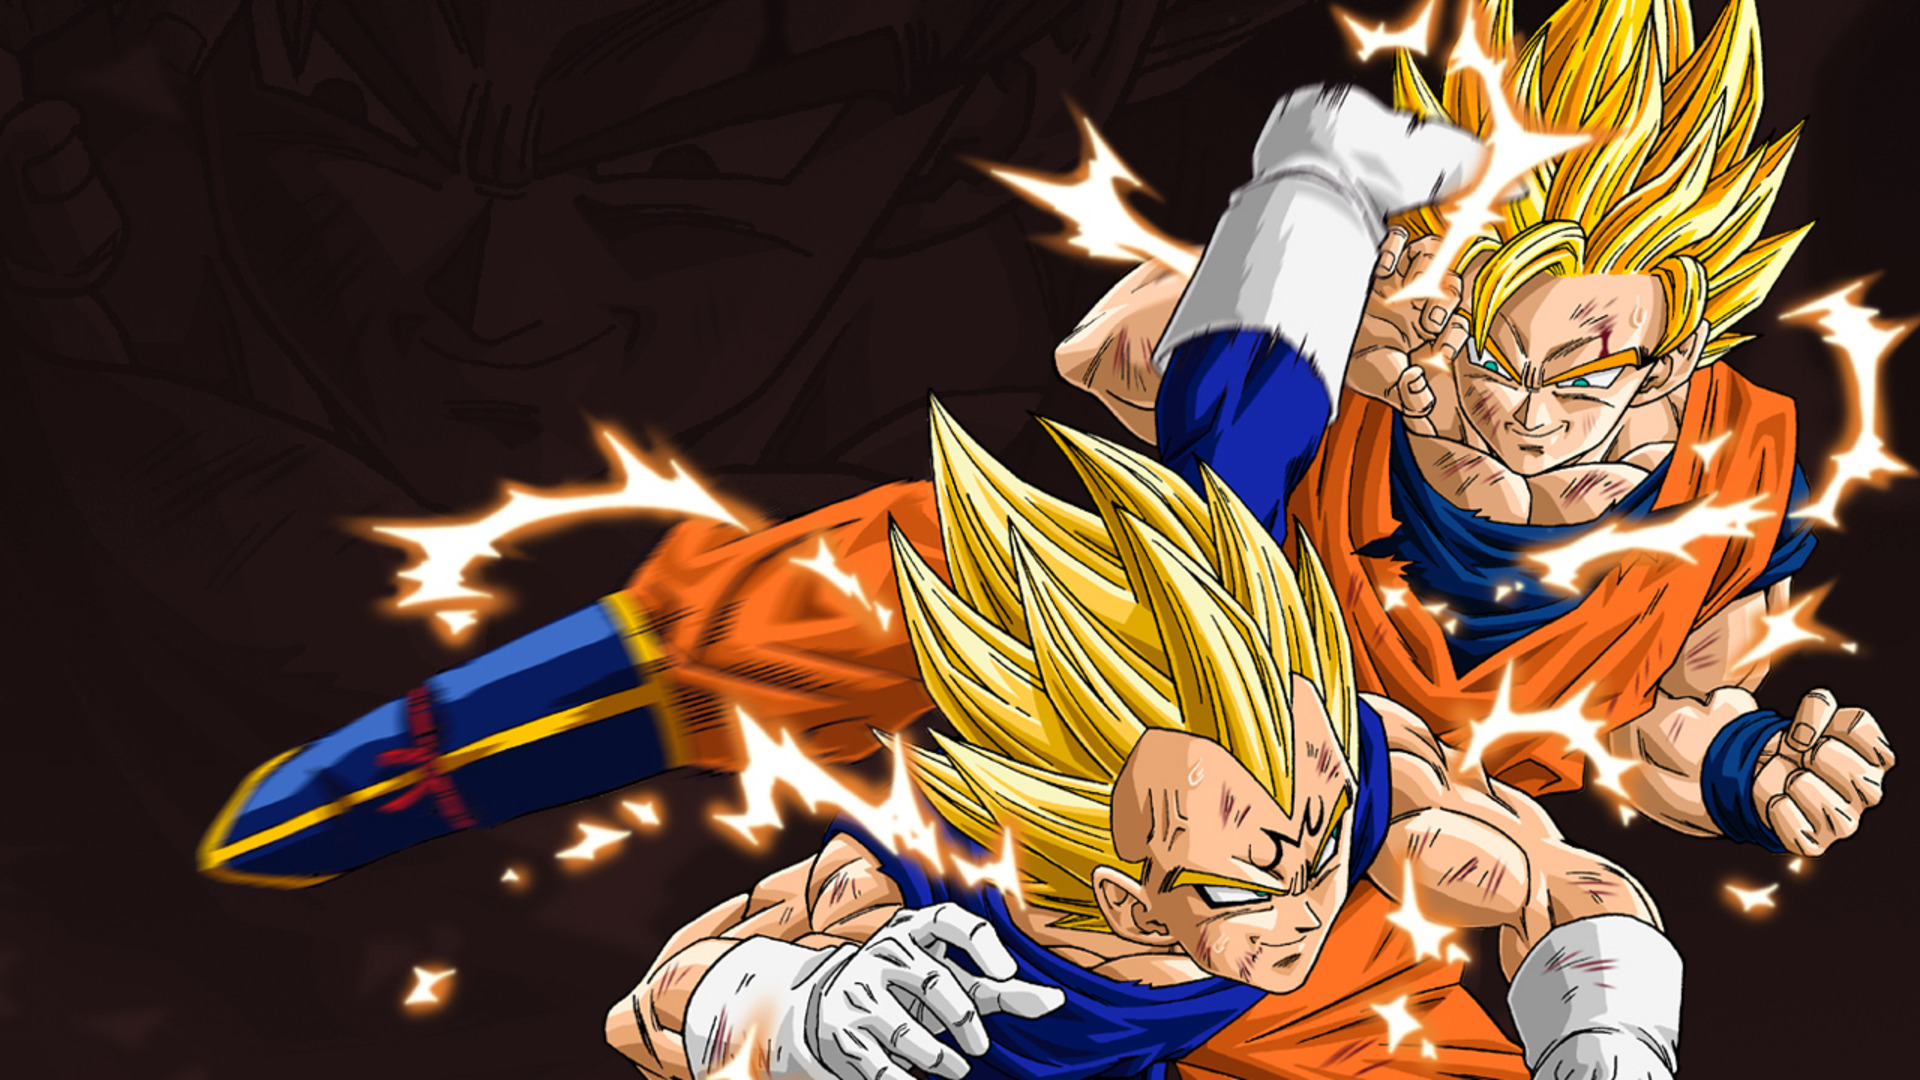 Dragon Ball Z Hd Wallpaper For Android: 10 Awesome HD DBZ Wallpapers